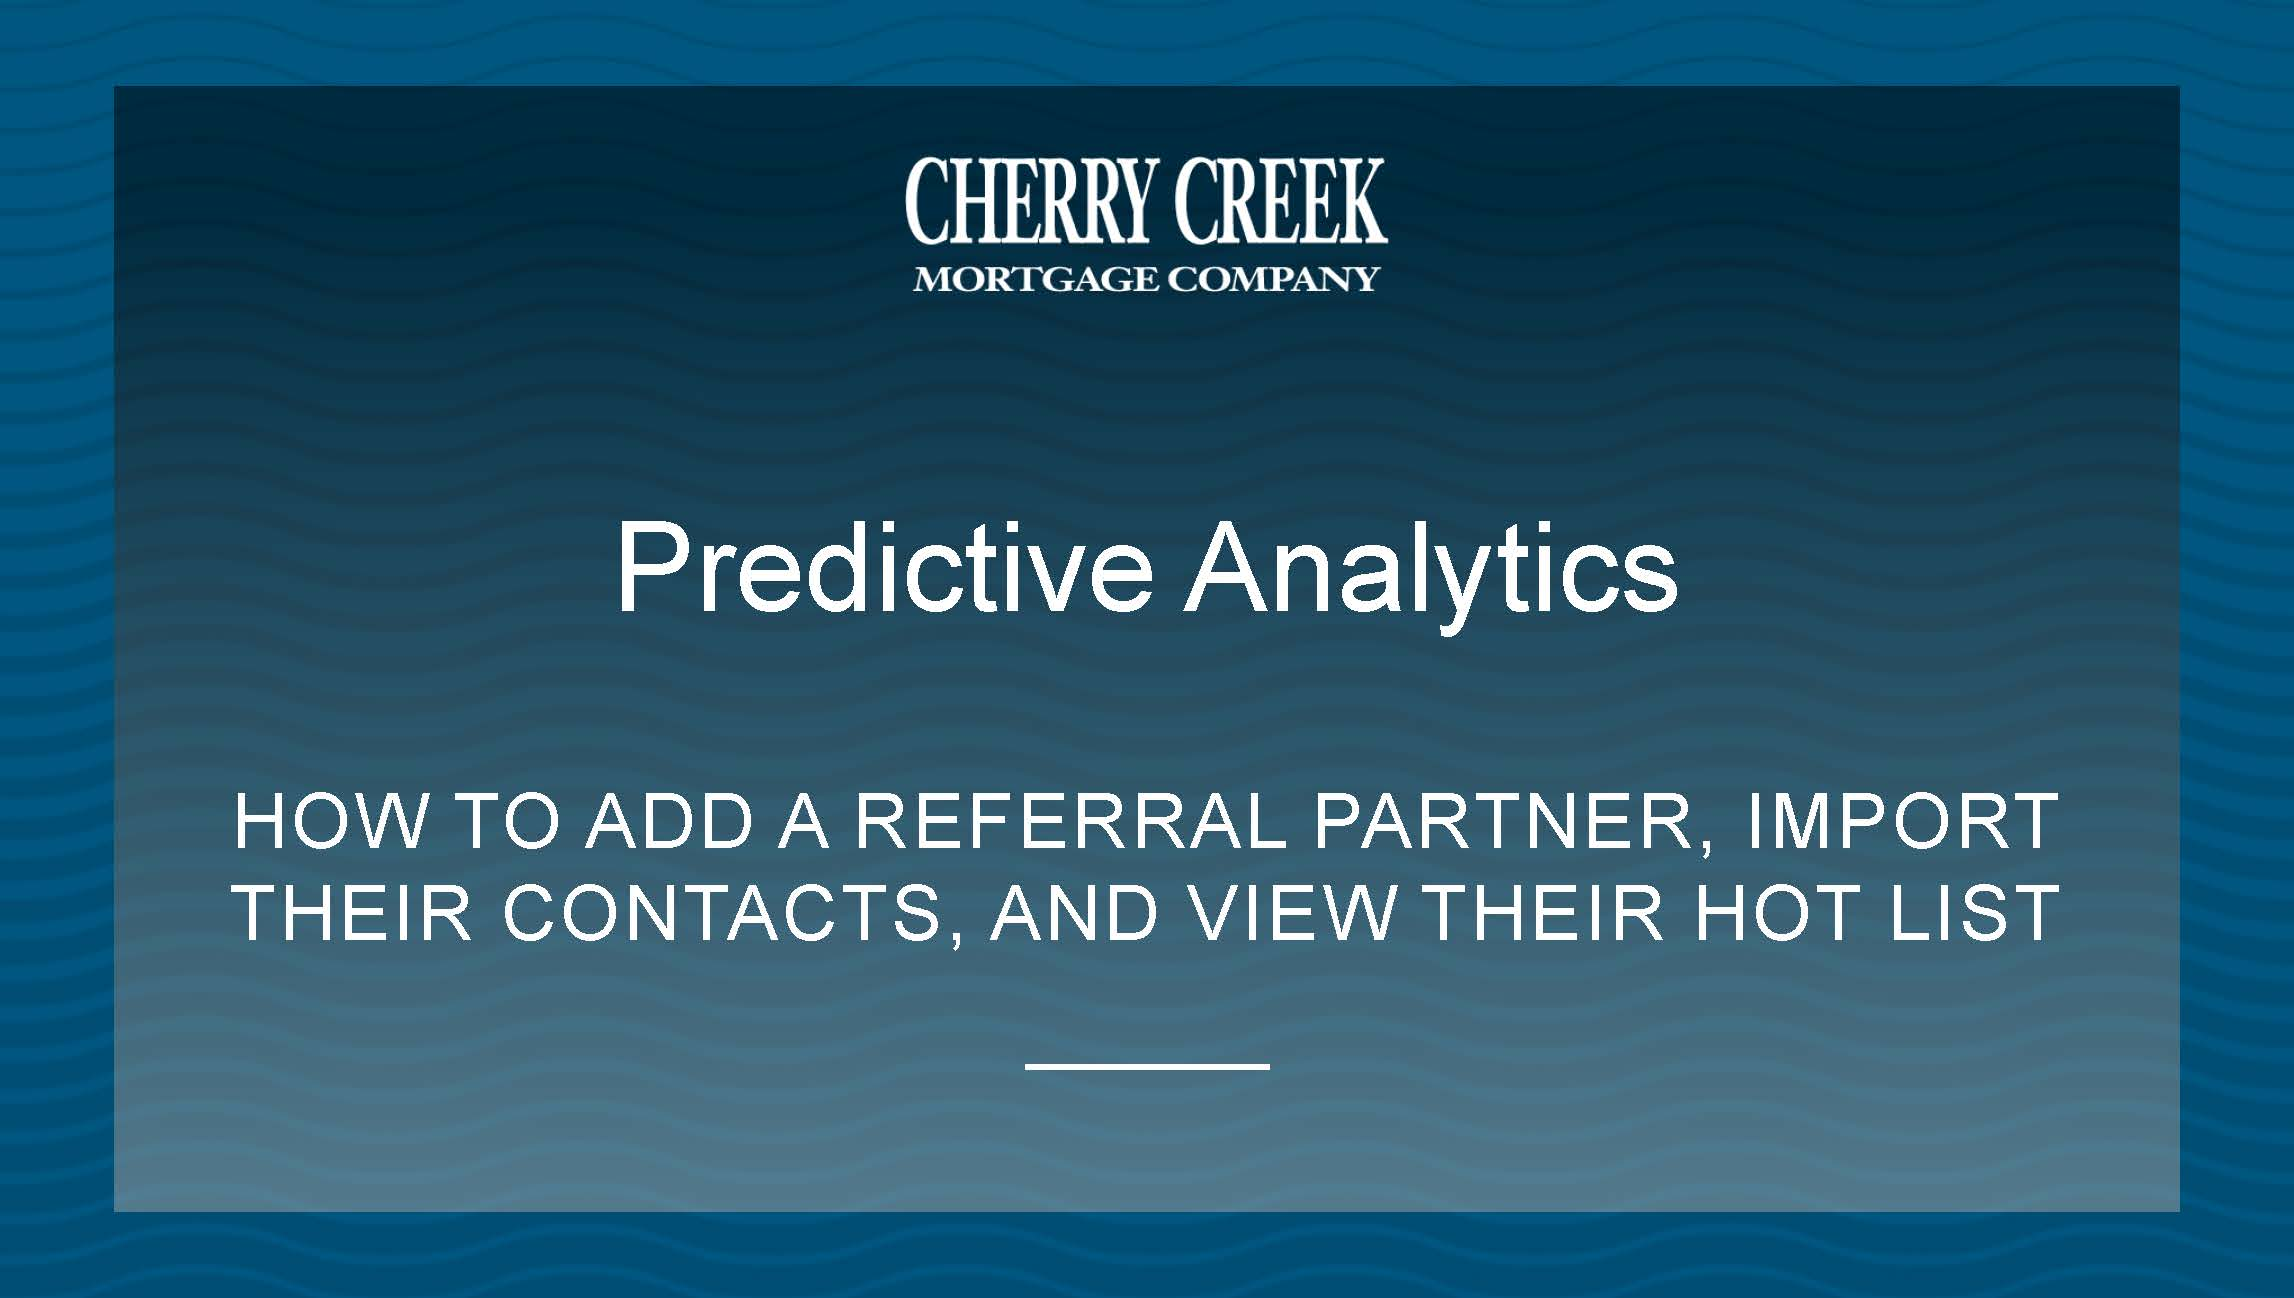 Predictive Analytics - How to add a referral partner_add their contacts_and view their hot list_Page_01.jpg